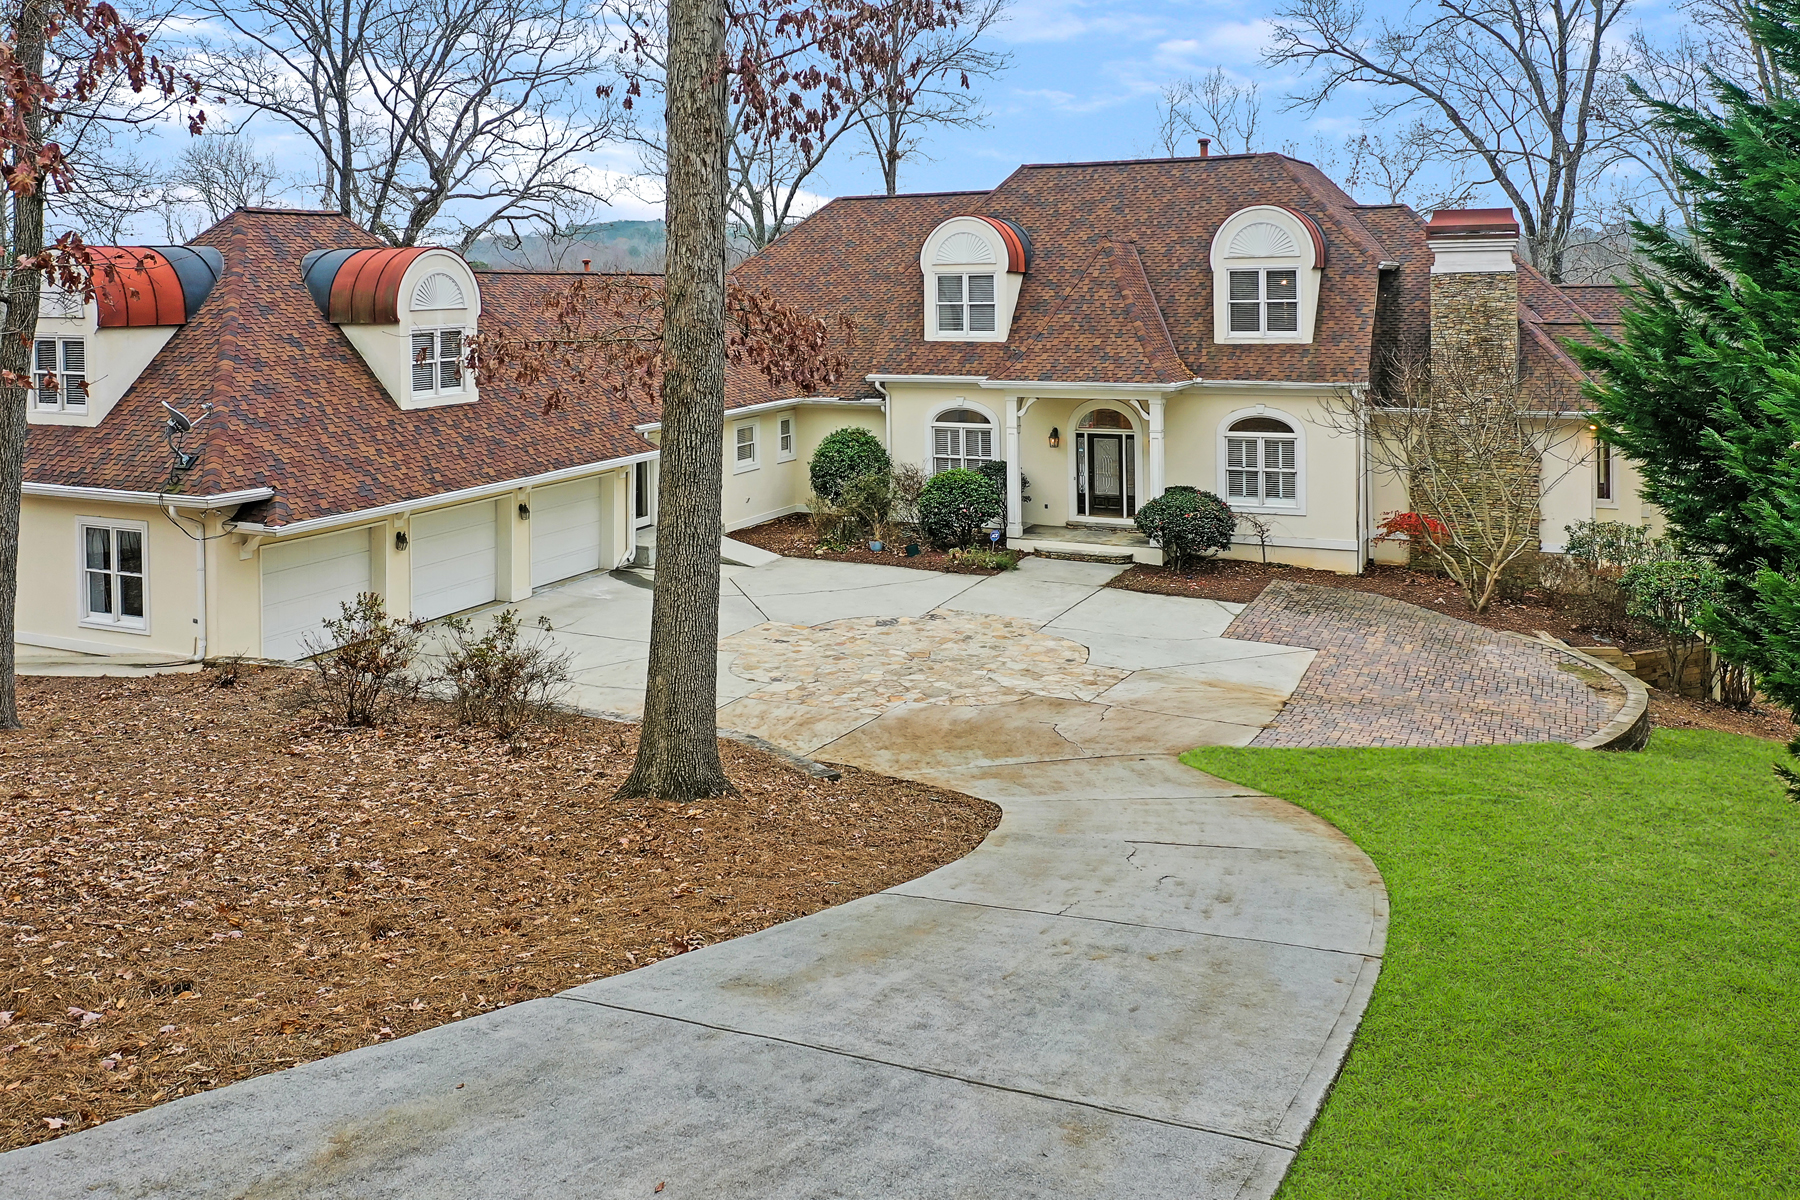 Single Family Homes for Active at Exceptional 3.1 Acre Country Club Of The South Estate On Chattahoochee River 535 Avala Court Johns Creek, Georgia 30022 United States